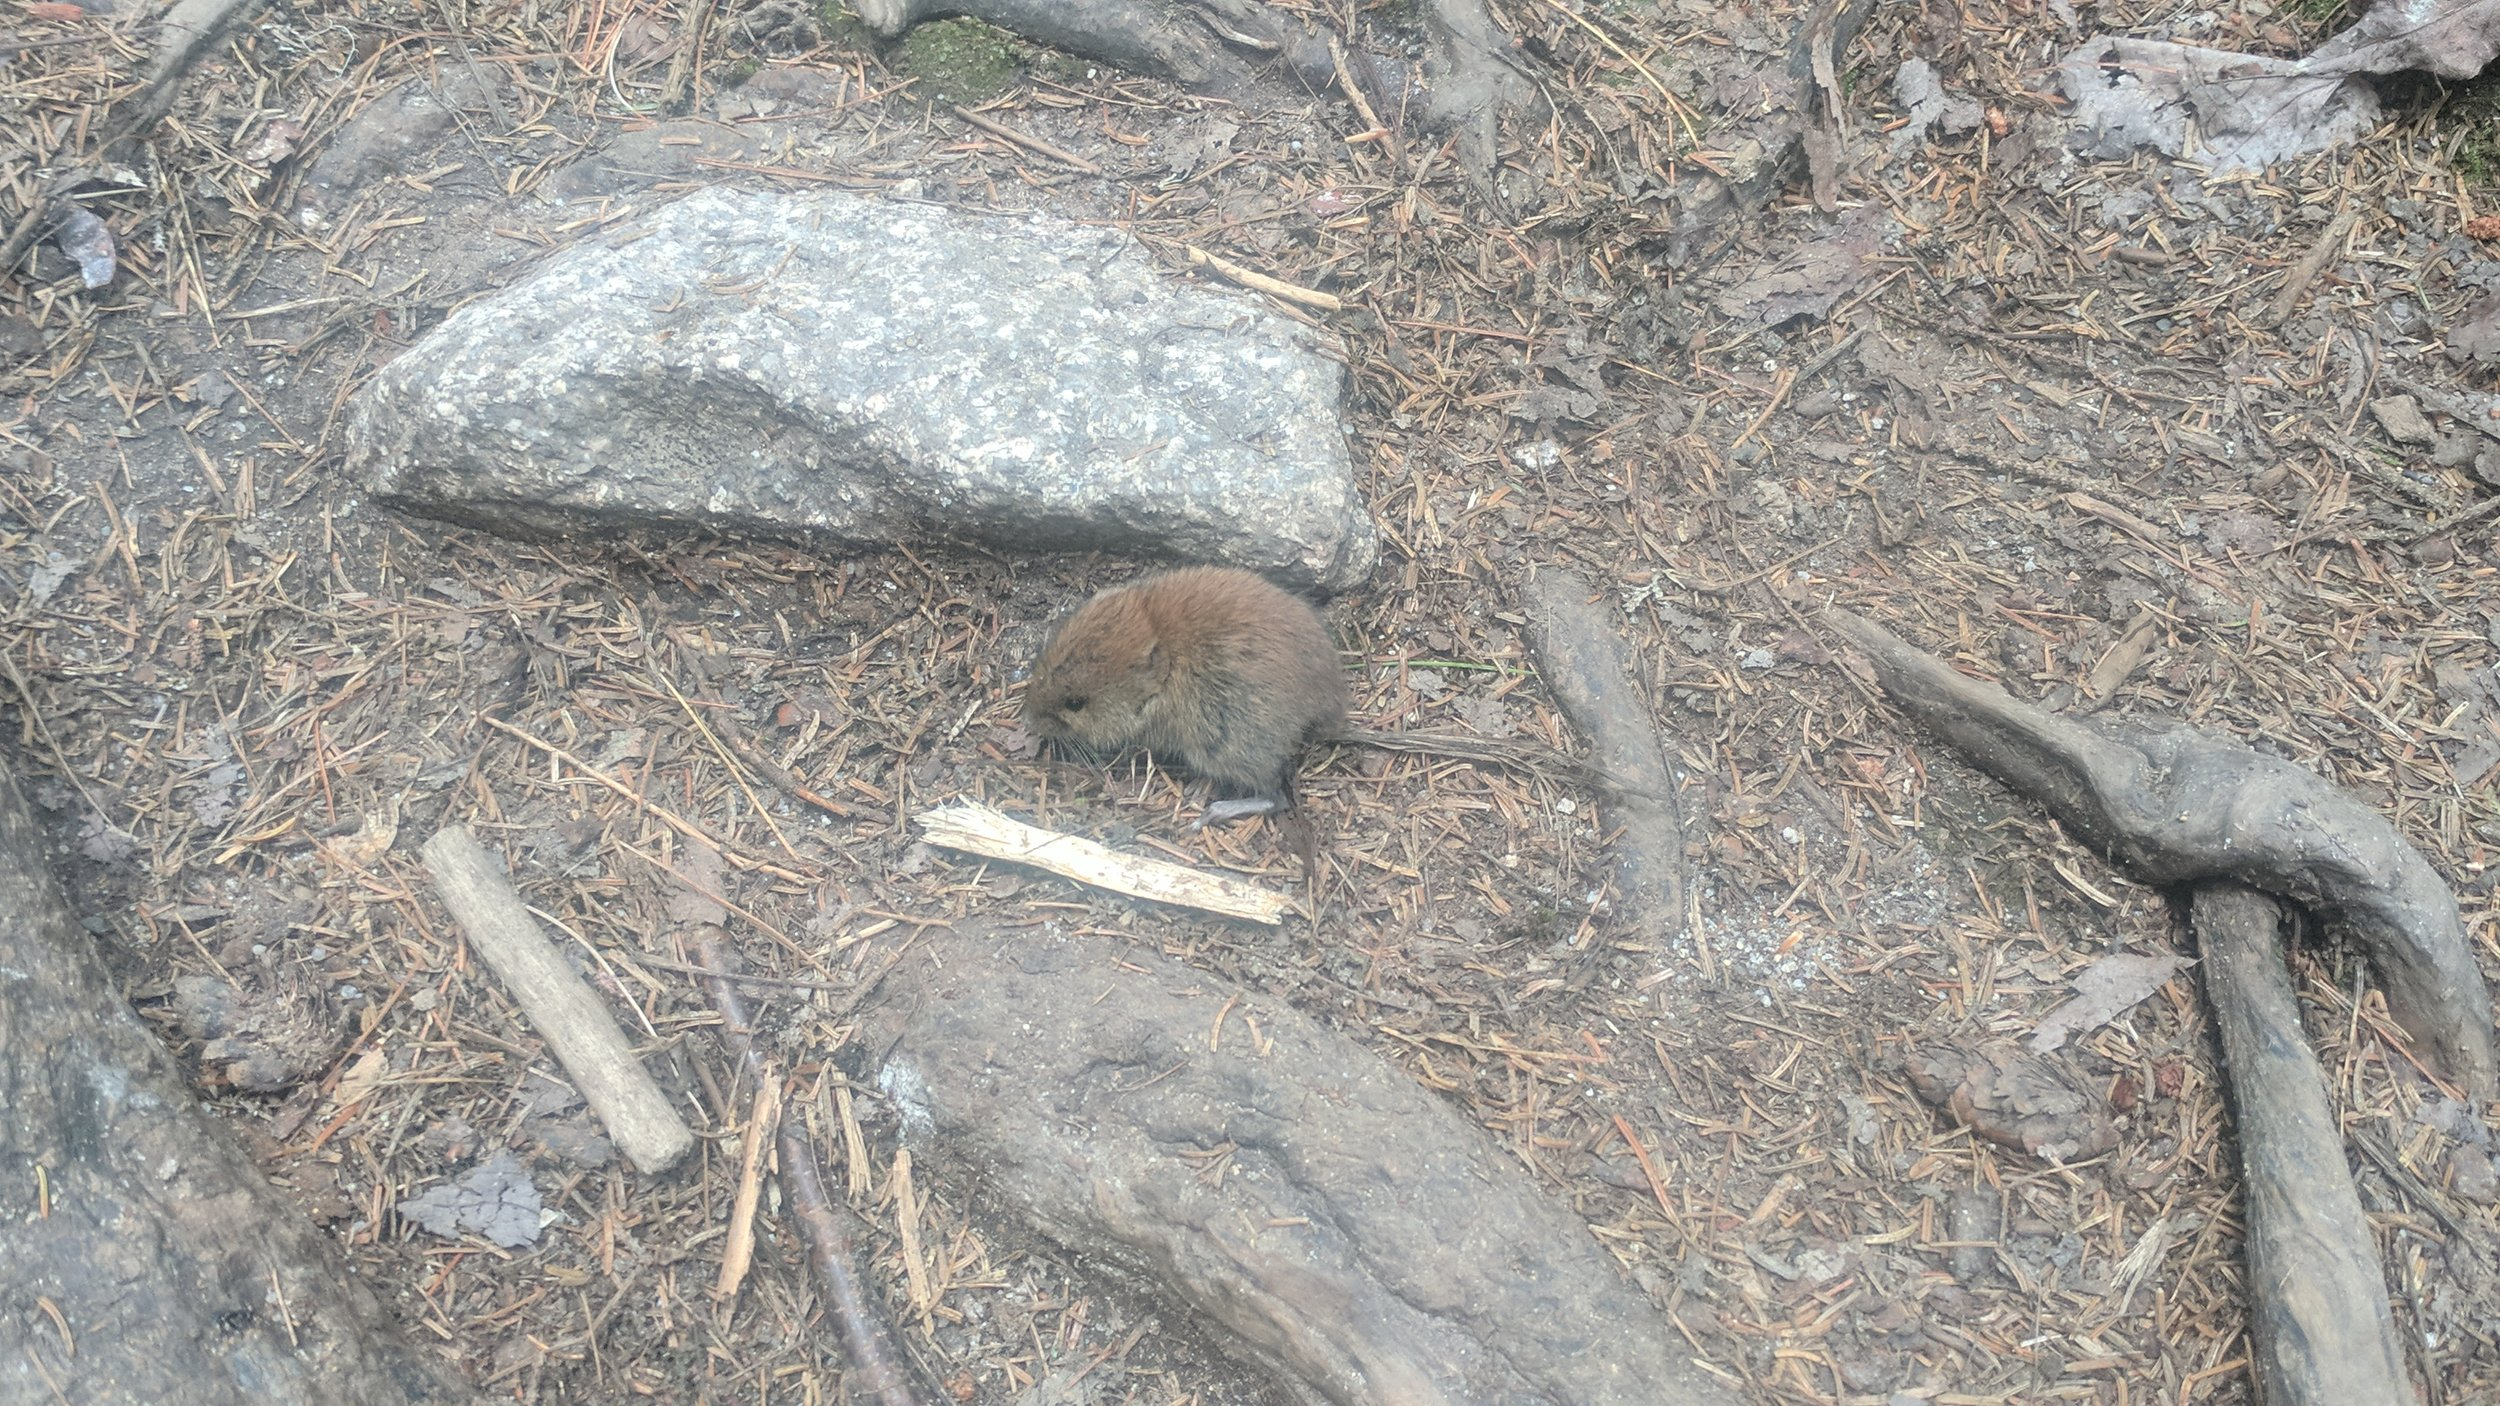 This mouse was so excited by what it was eating it didn't care I was there. I wonder if there is something succulent enough to make me ignore something a thousand times bigger standing over me within squashing distance.